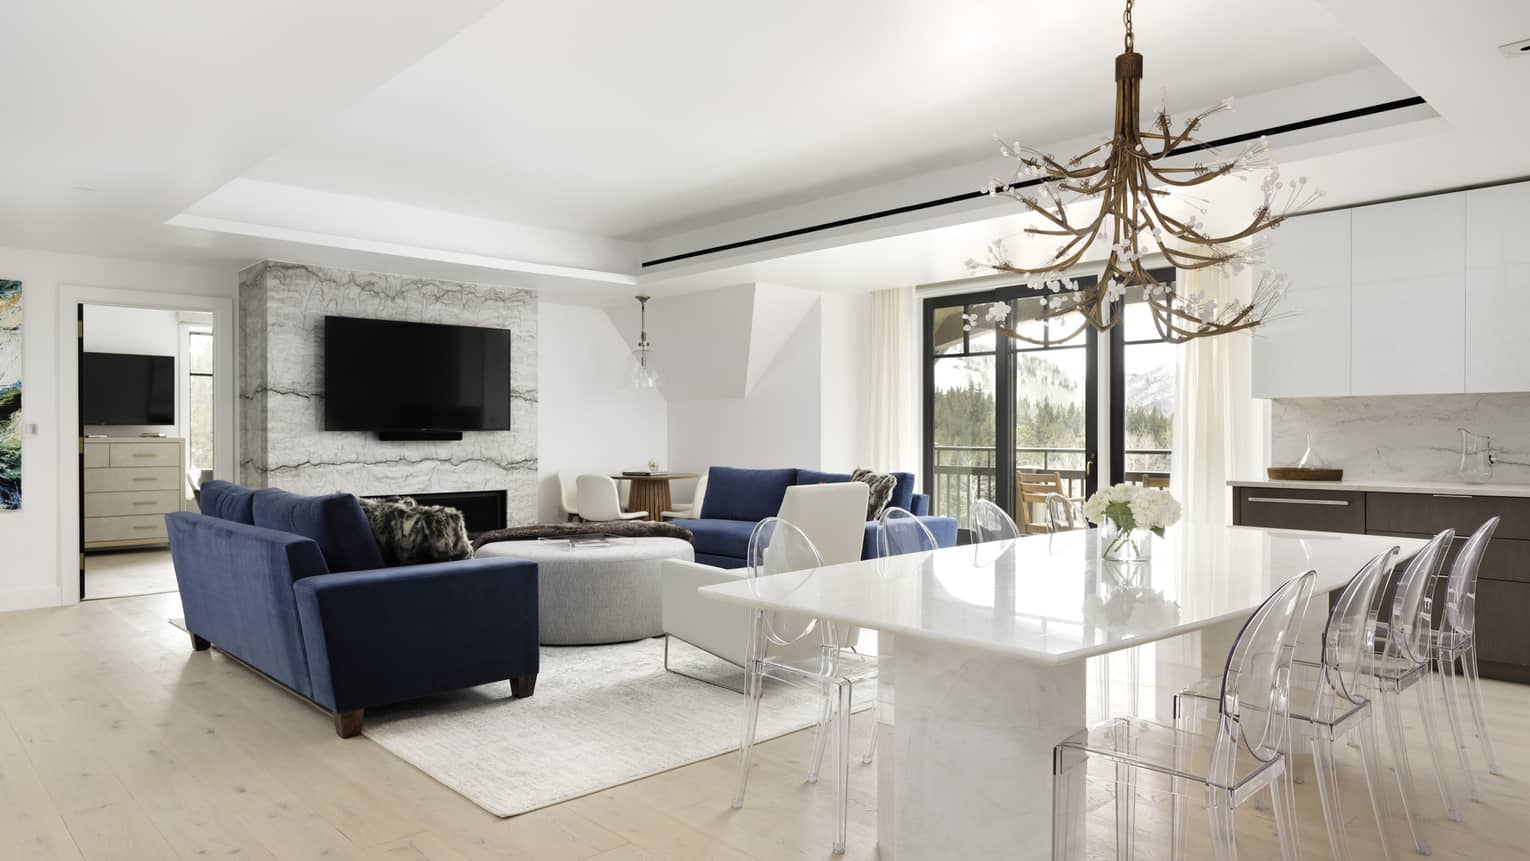 Living area with two dark blue sofas, fireplace, TV, opening to dining area with white table and 8 clear chairs